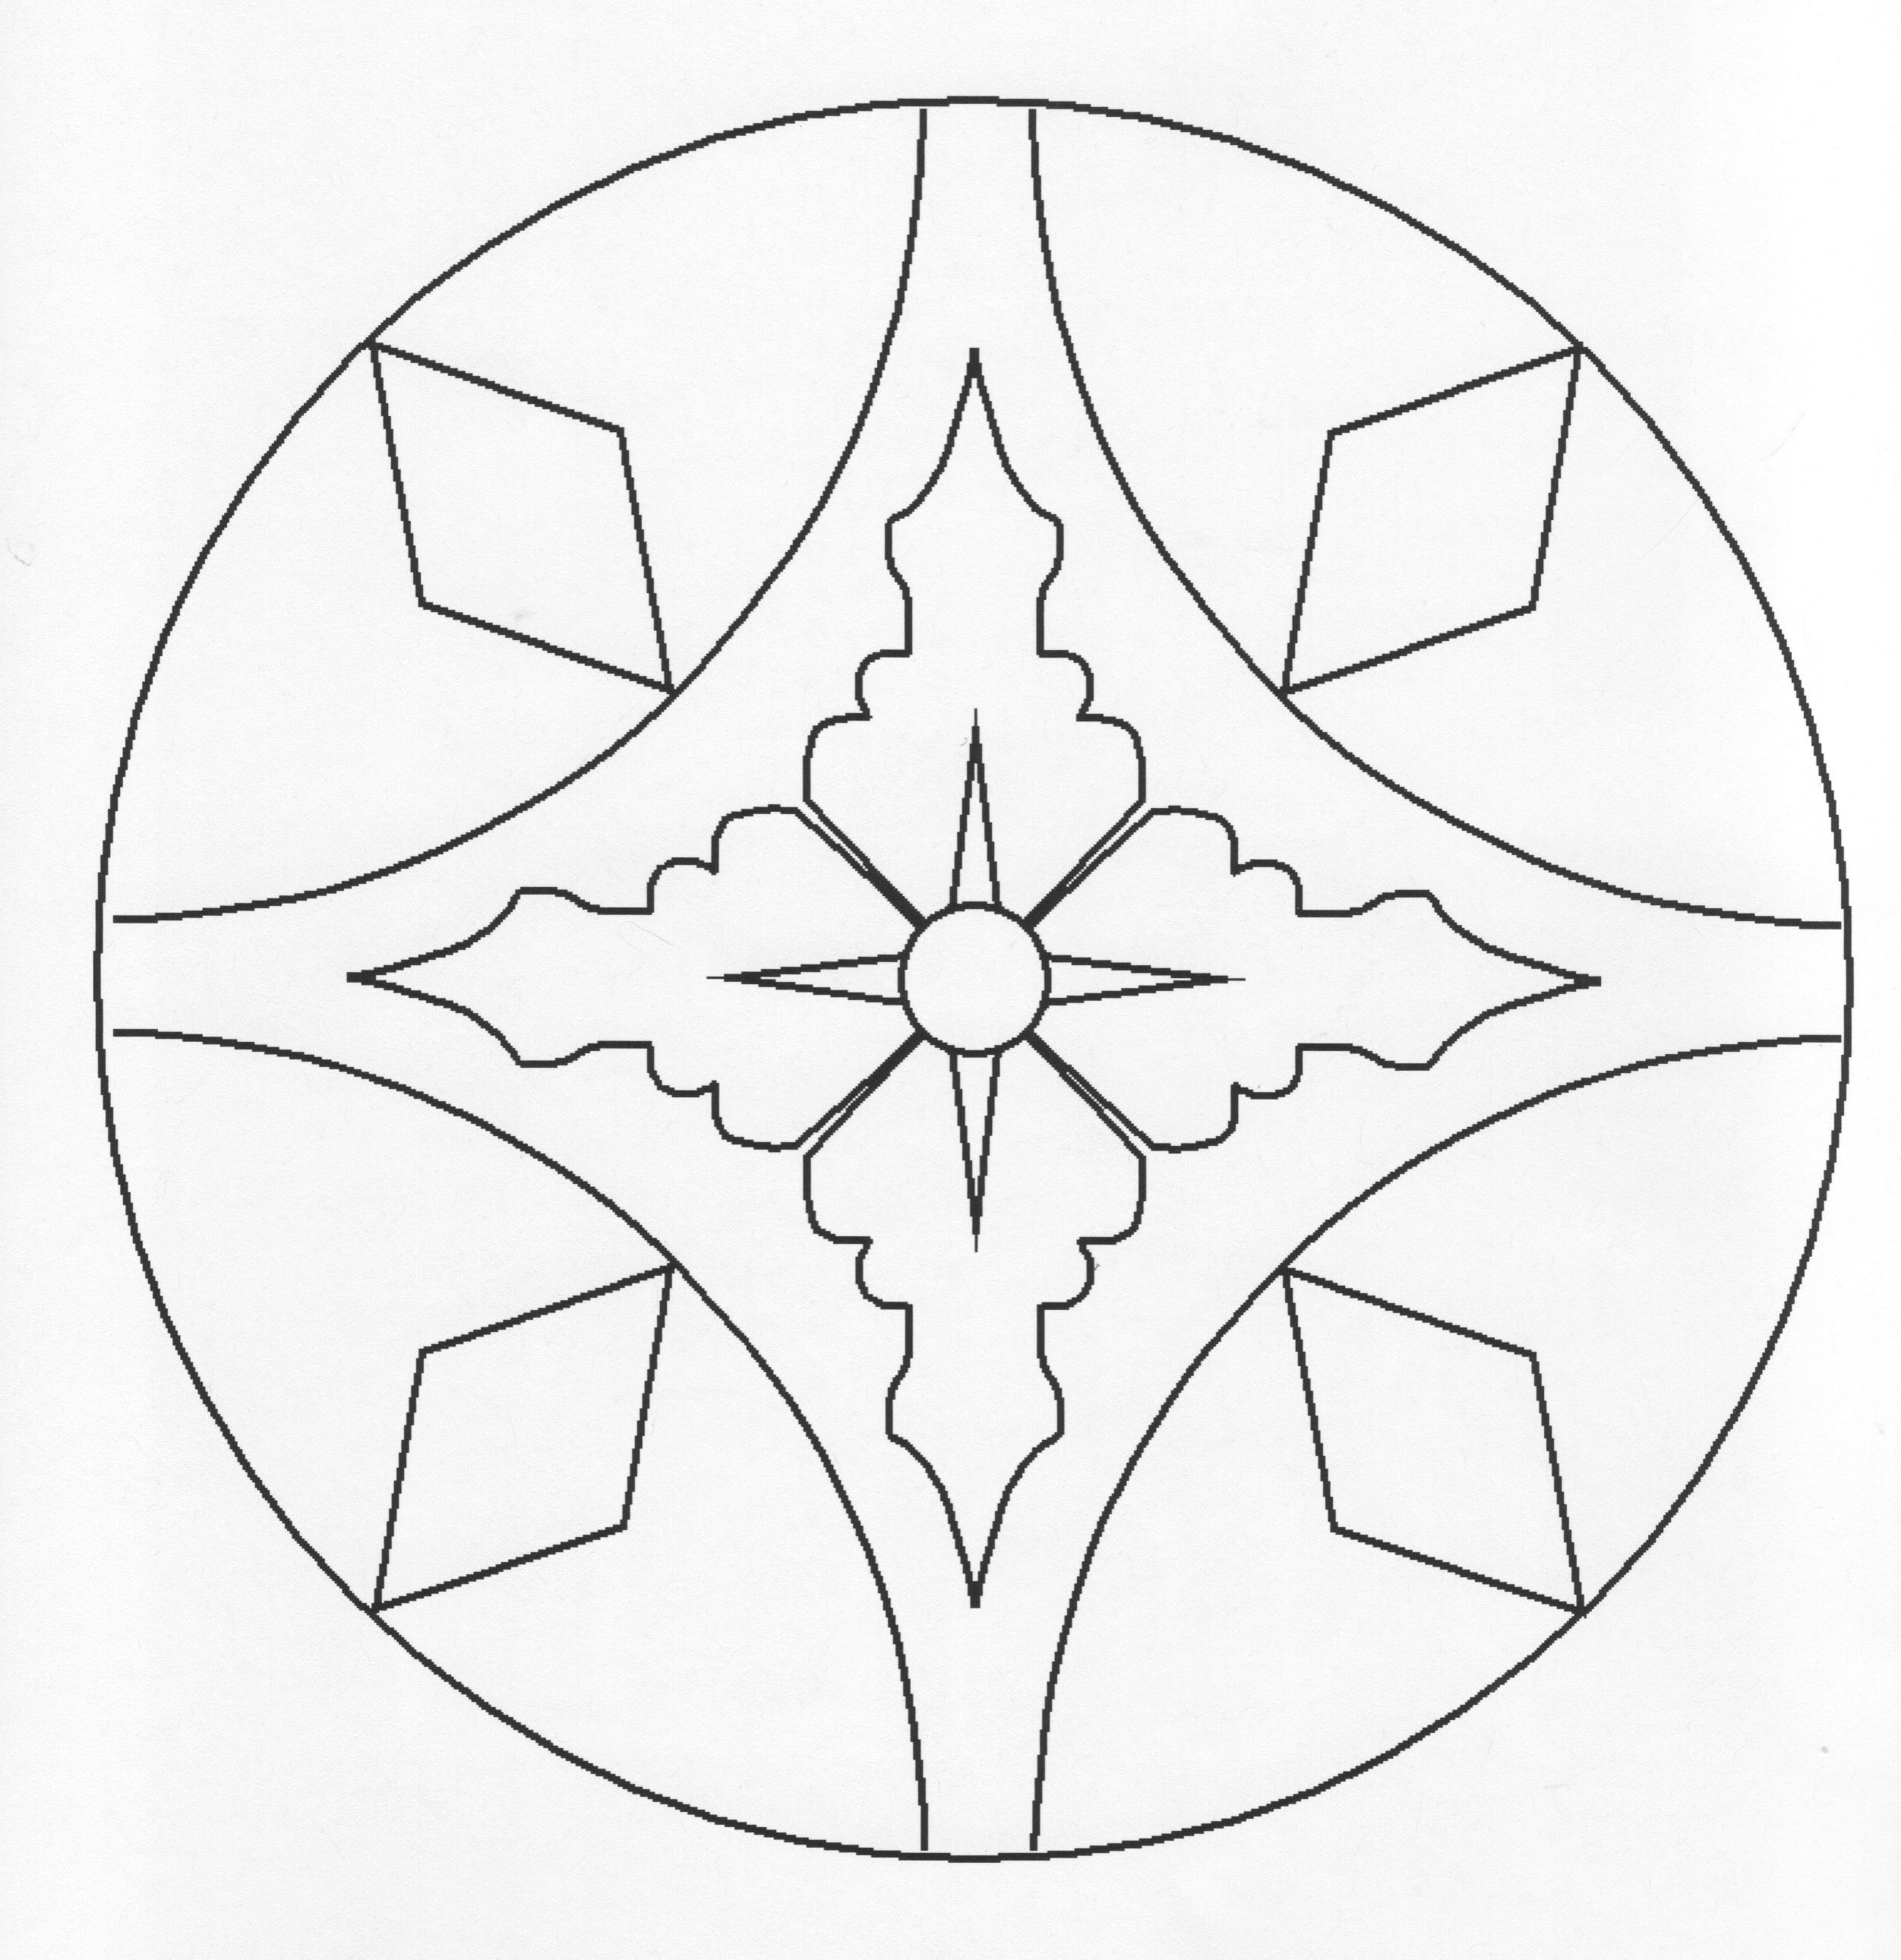 Rangoli Patterns Free Colouring Pages Rangoli Designs Printable Coloring Pages